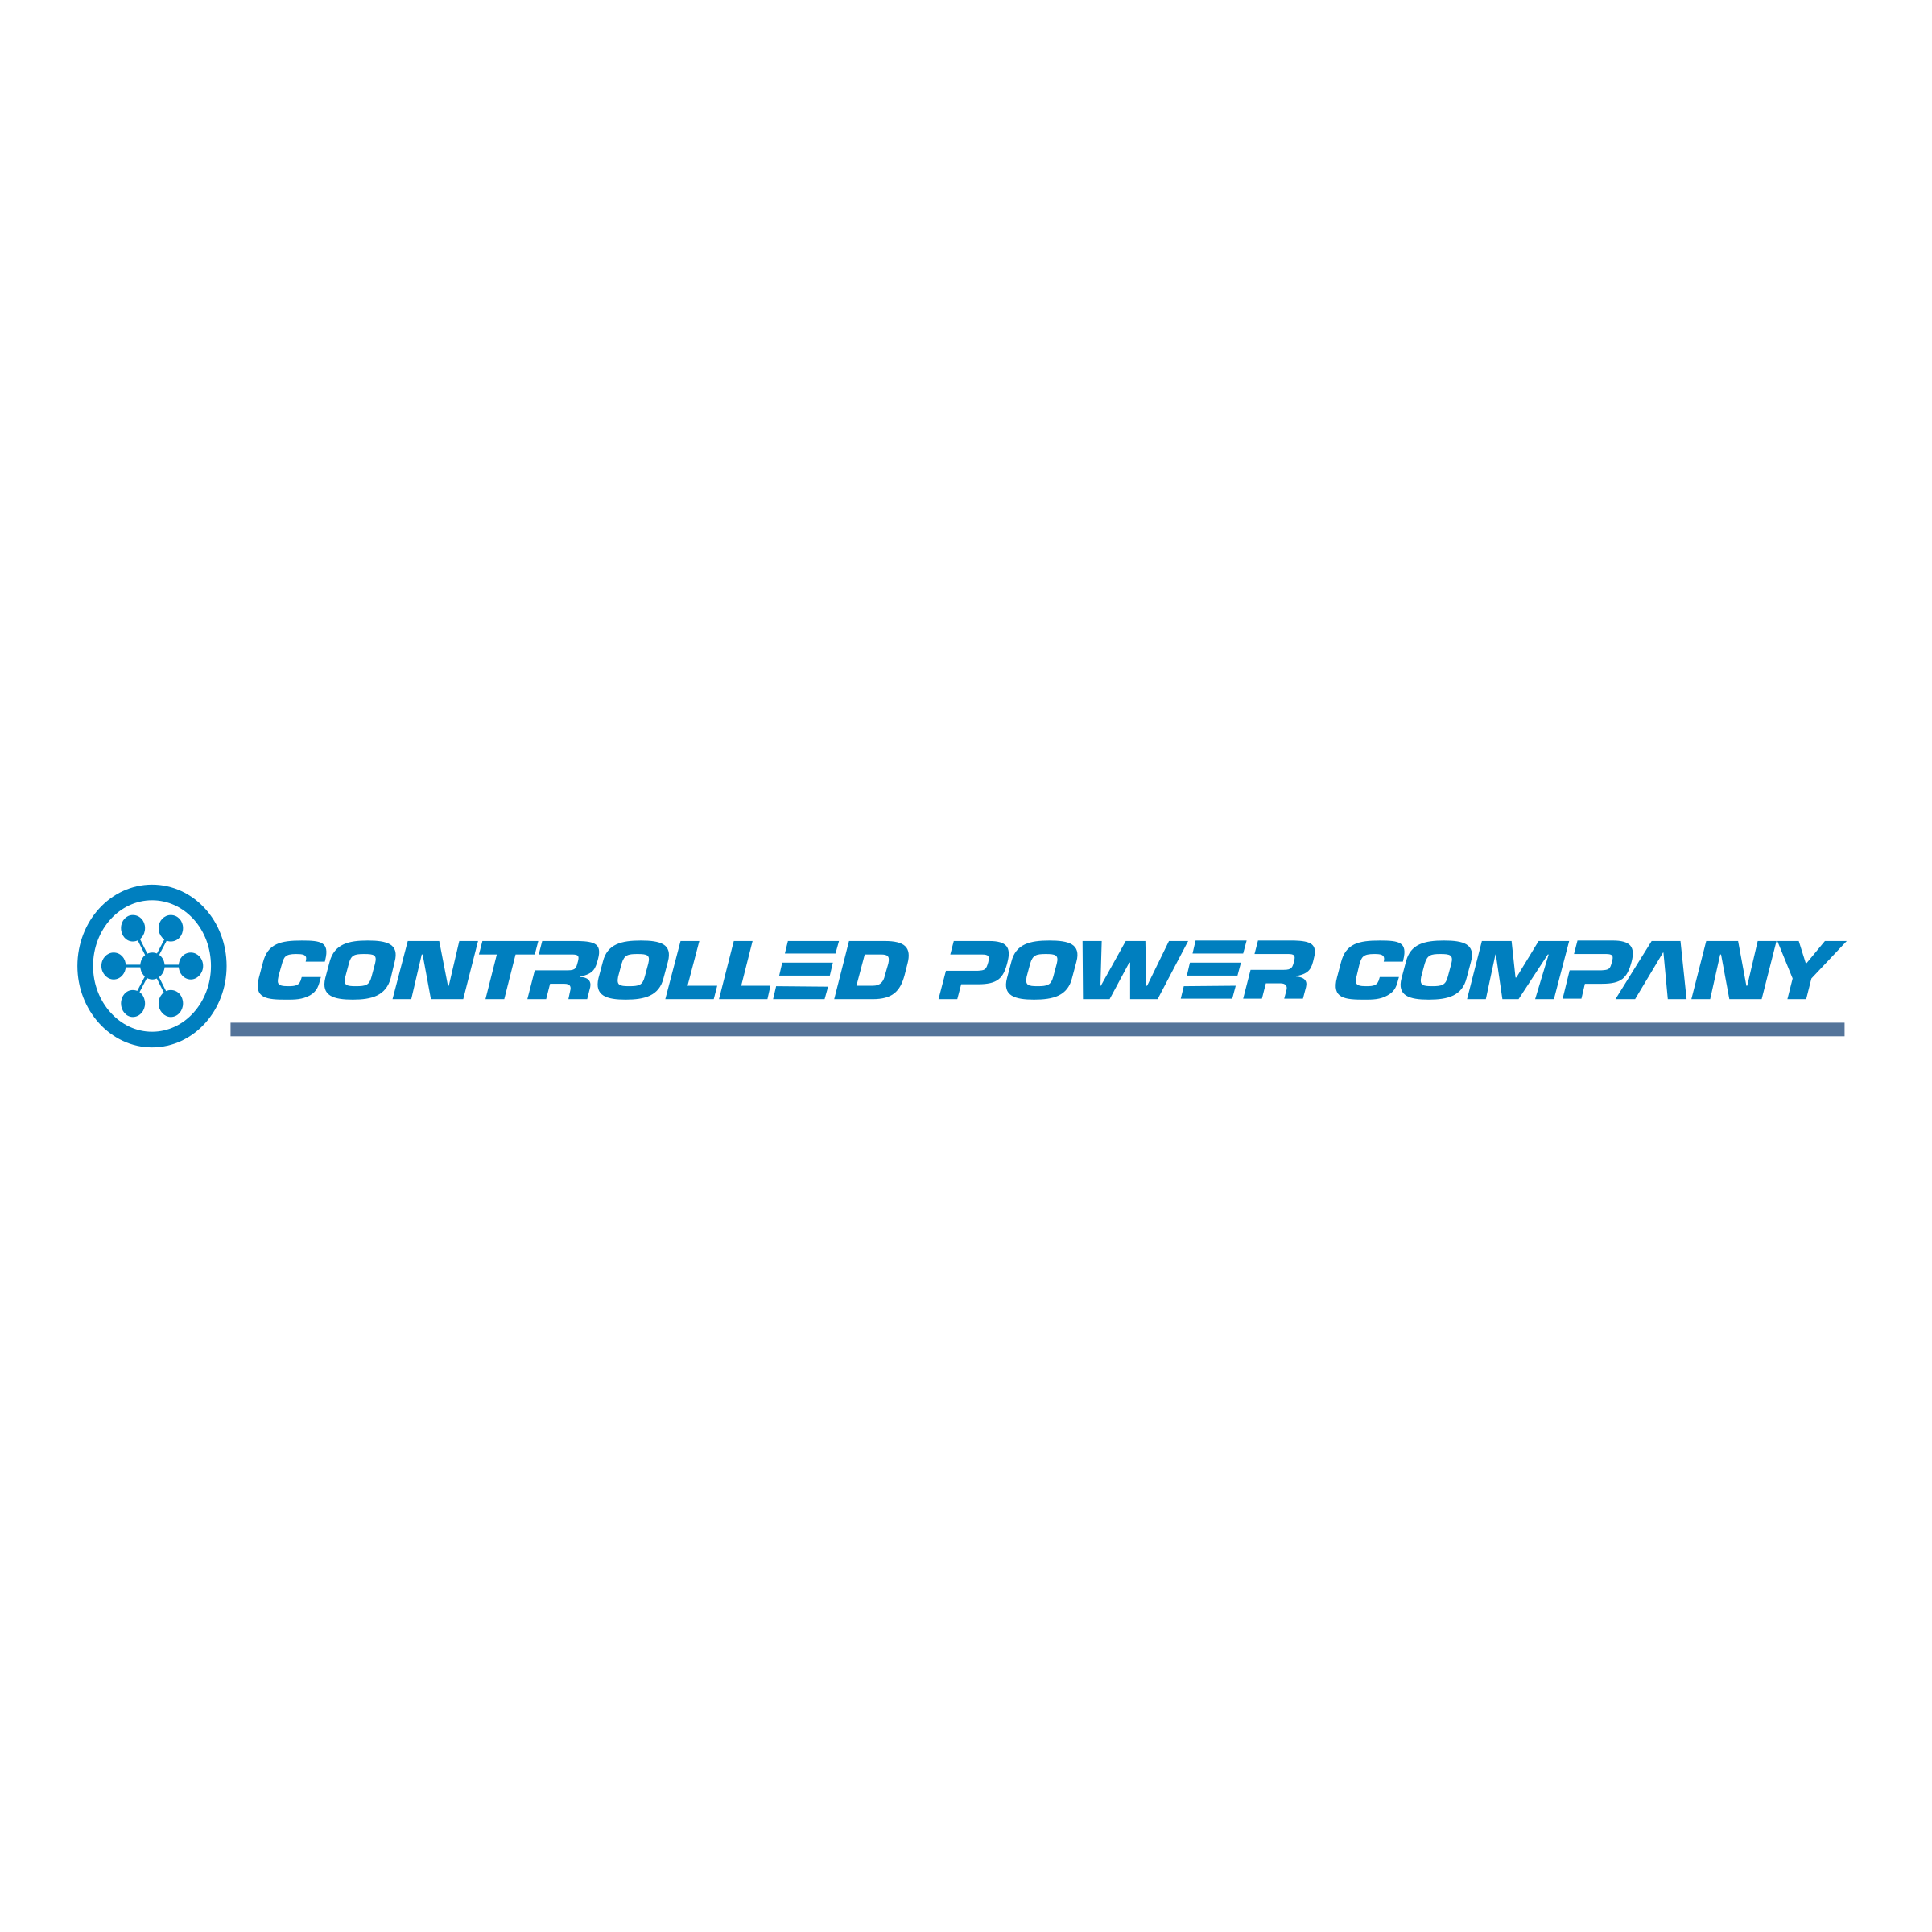 controlled-power-company-logo-png-transparent.png